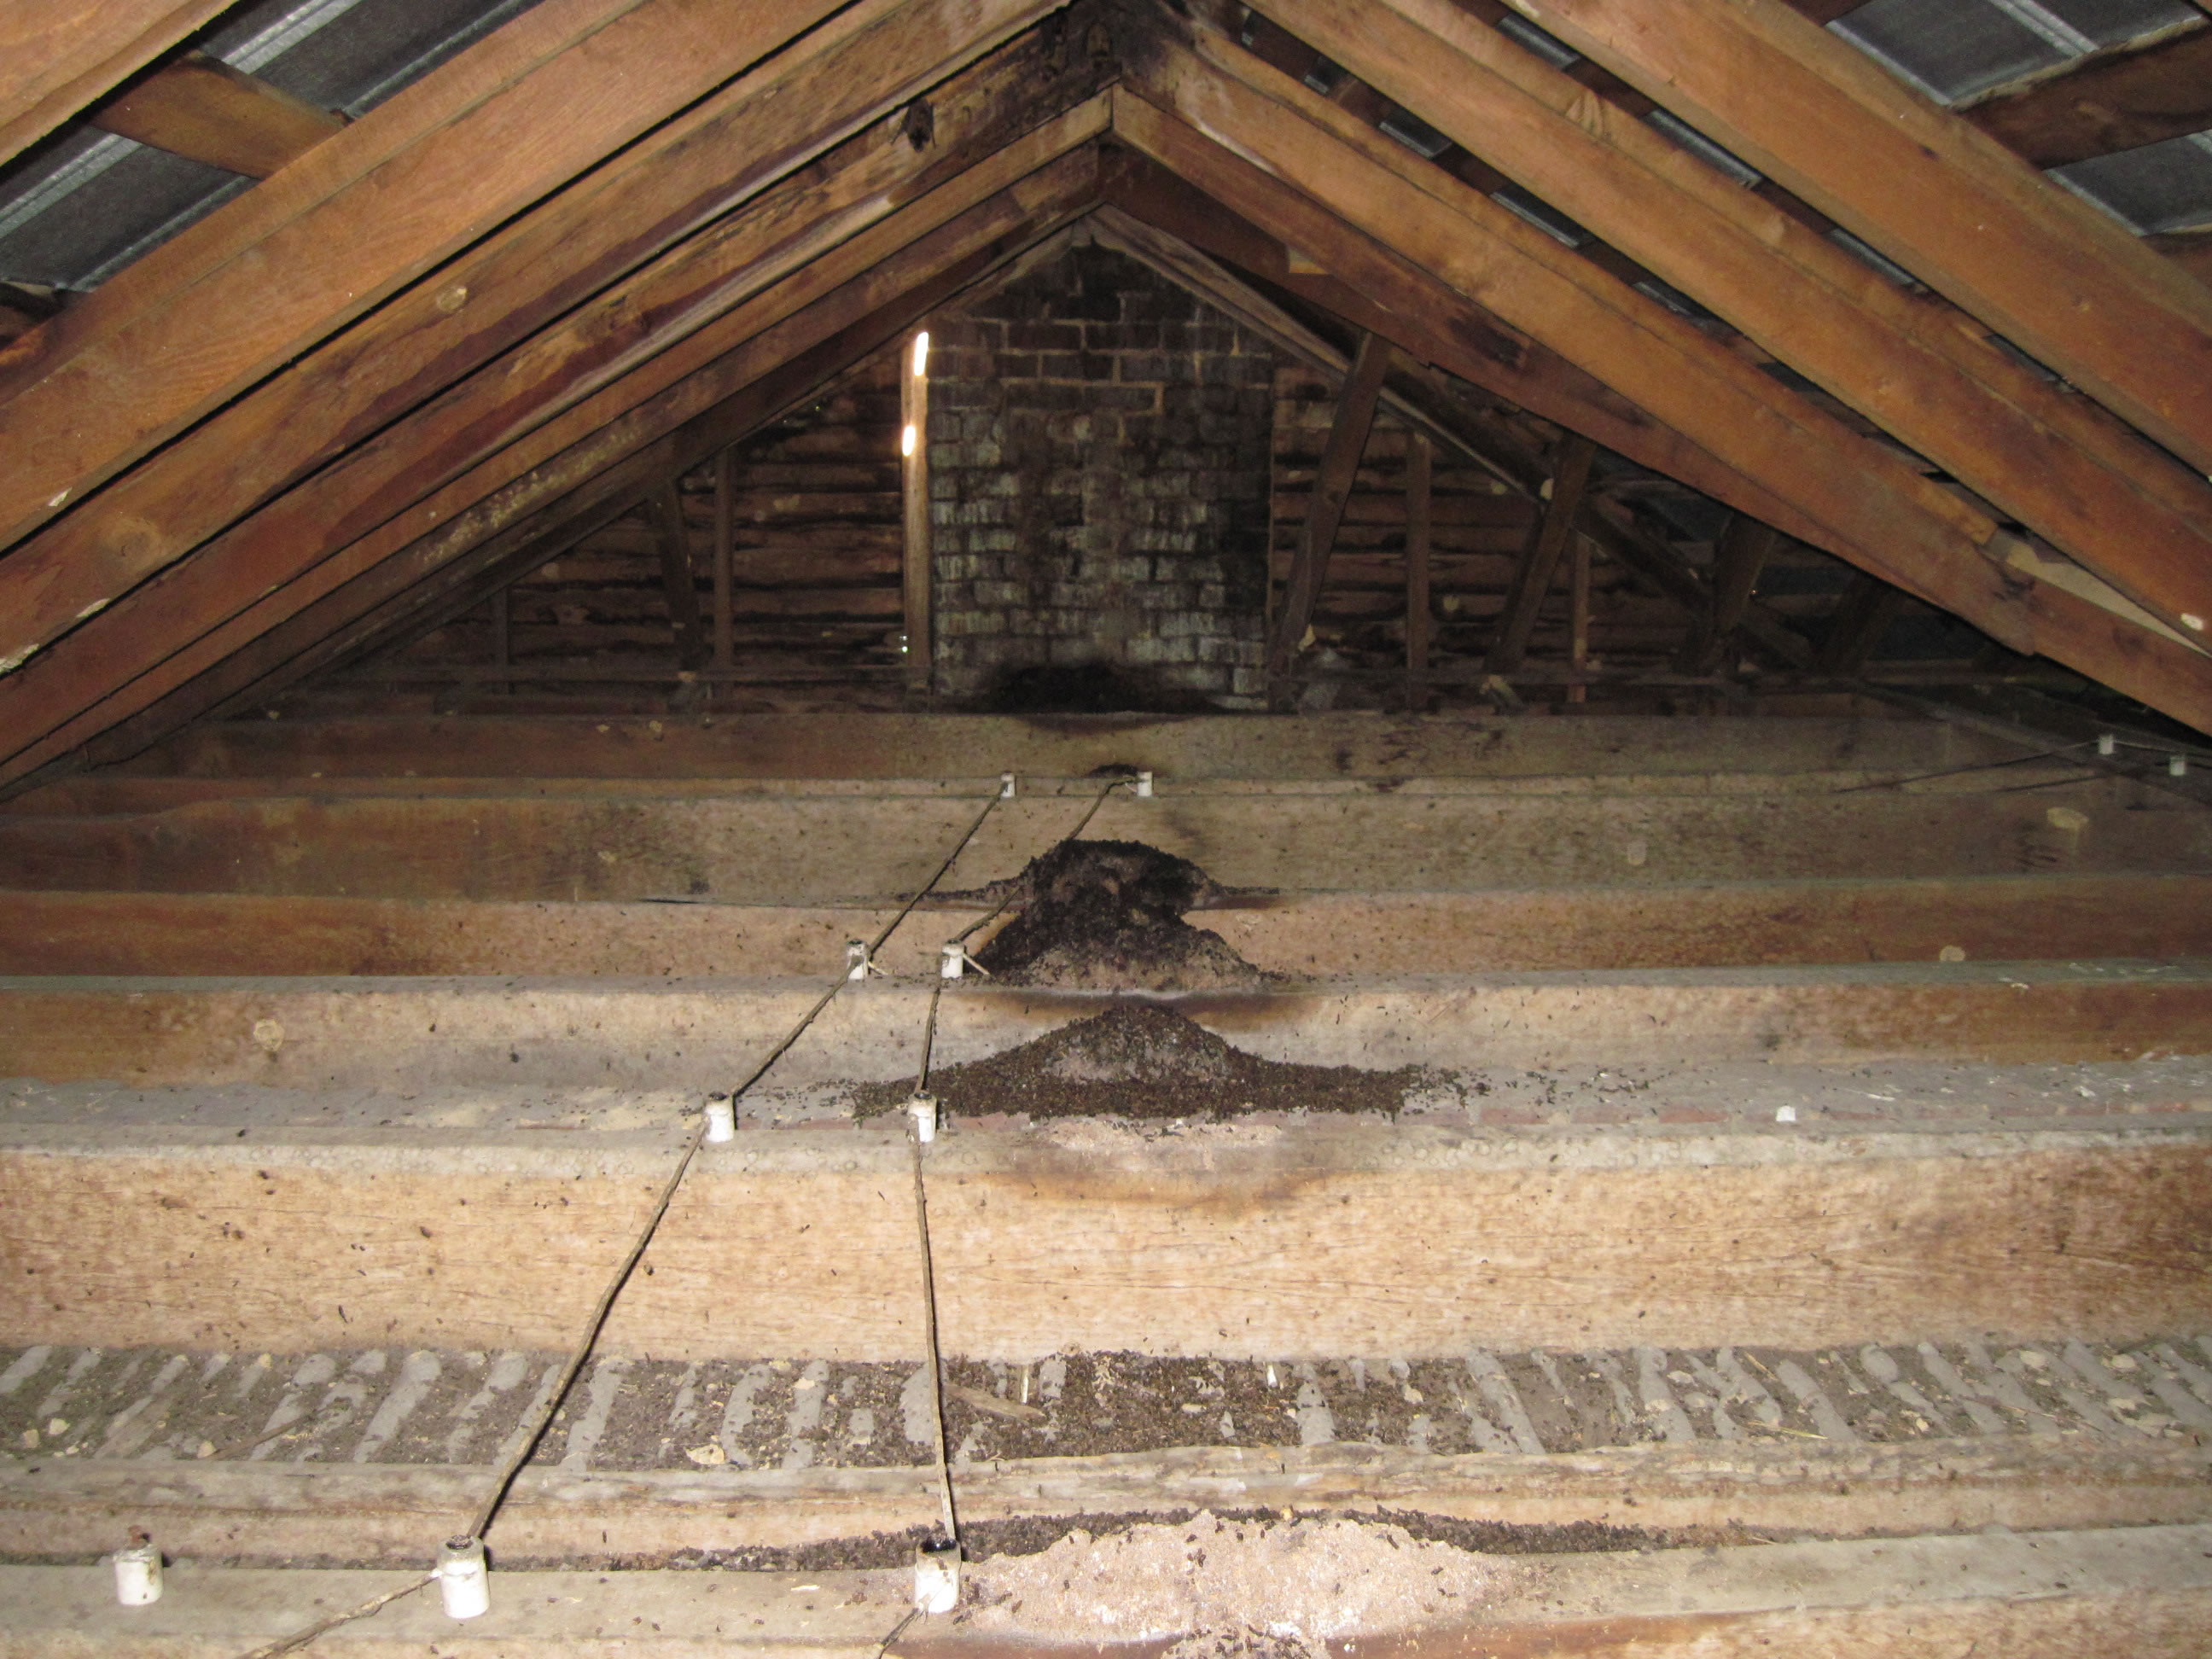 bat infested attic has bad bat problem that needs to be cleaned out